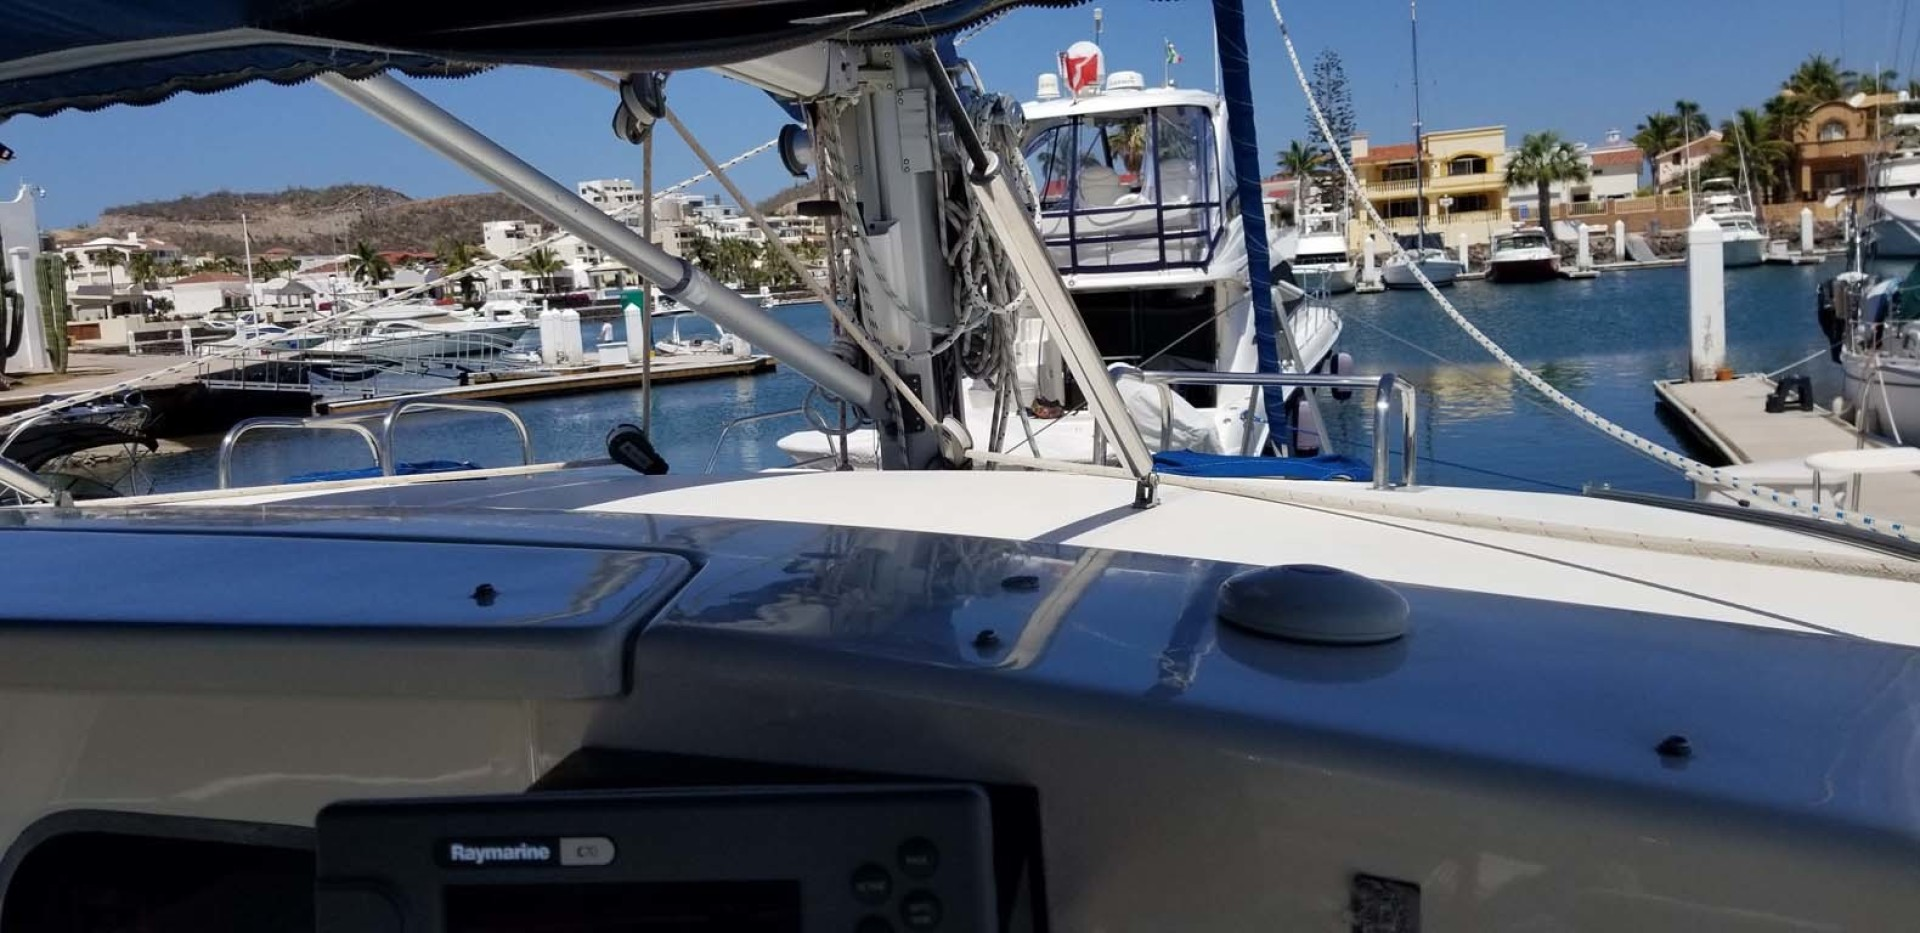 Robertson & Caine-Leopard 38 Catamaran 2000-Jean San Carlos, Sonora-Mexico-Forward View from Cockpit-1452787 | Thumbnail